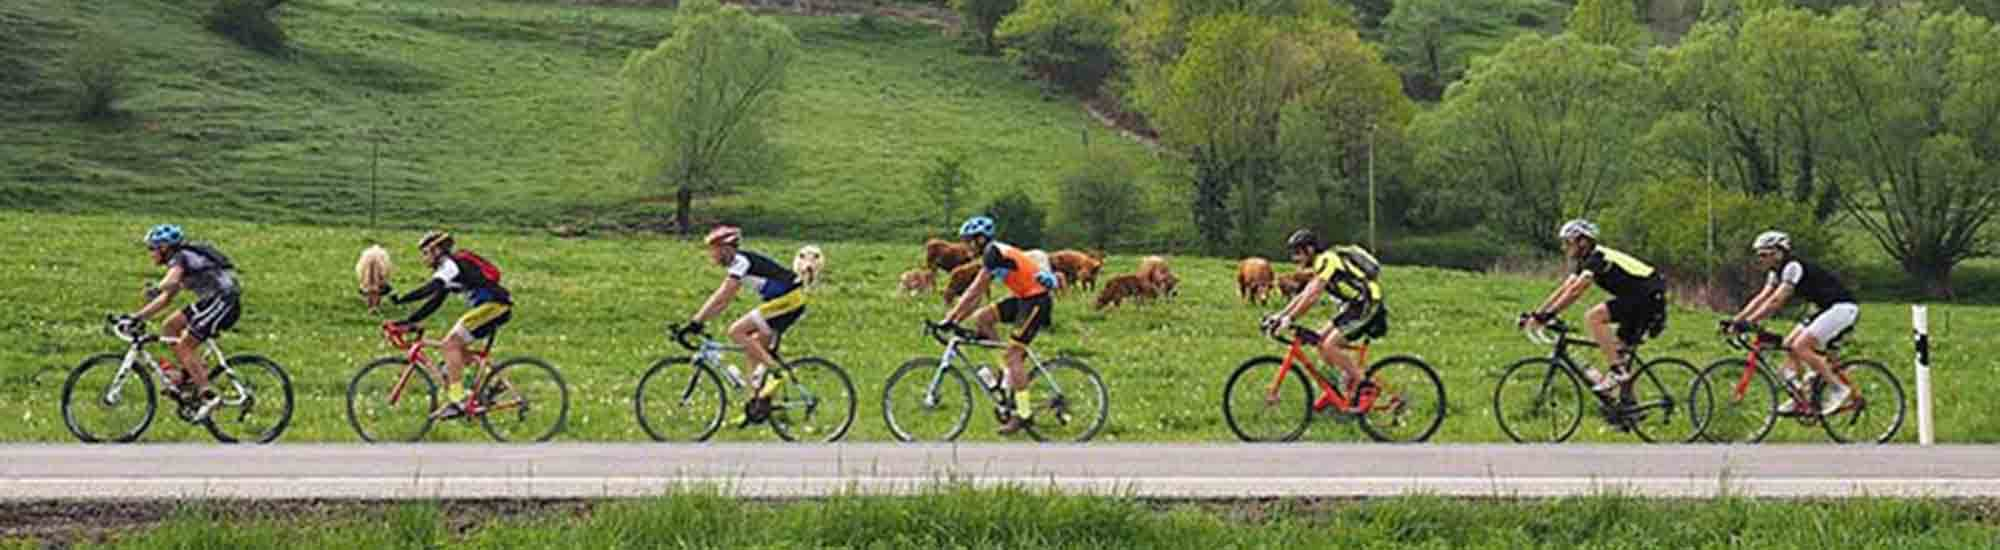 Bespoke Cycling - Annecy Weekend - 6/6/19-9/6/19 - £1700